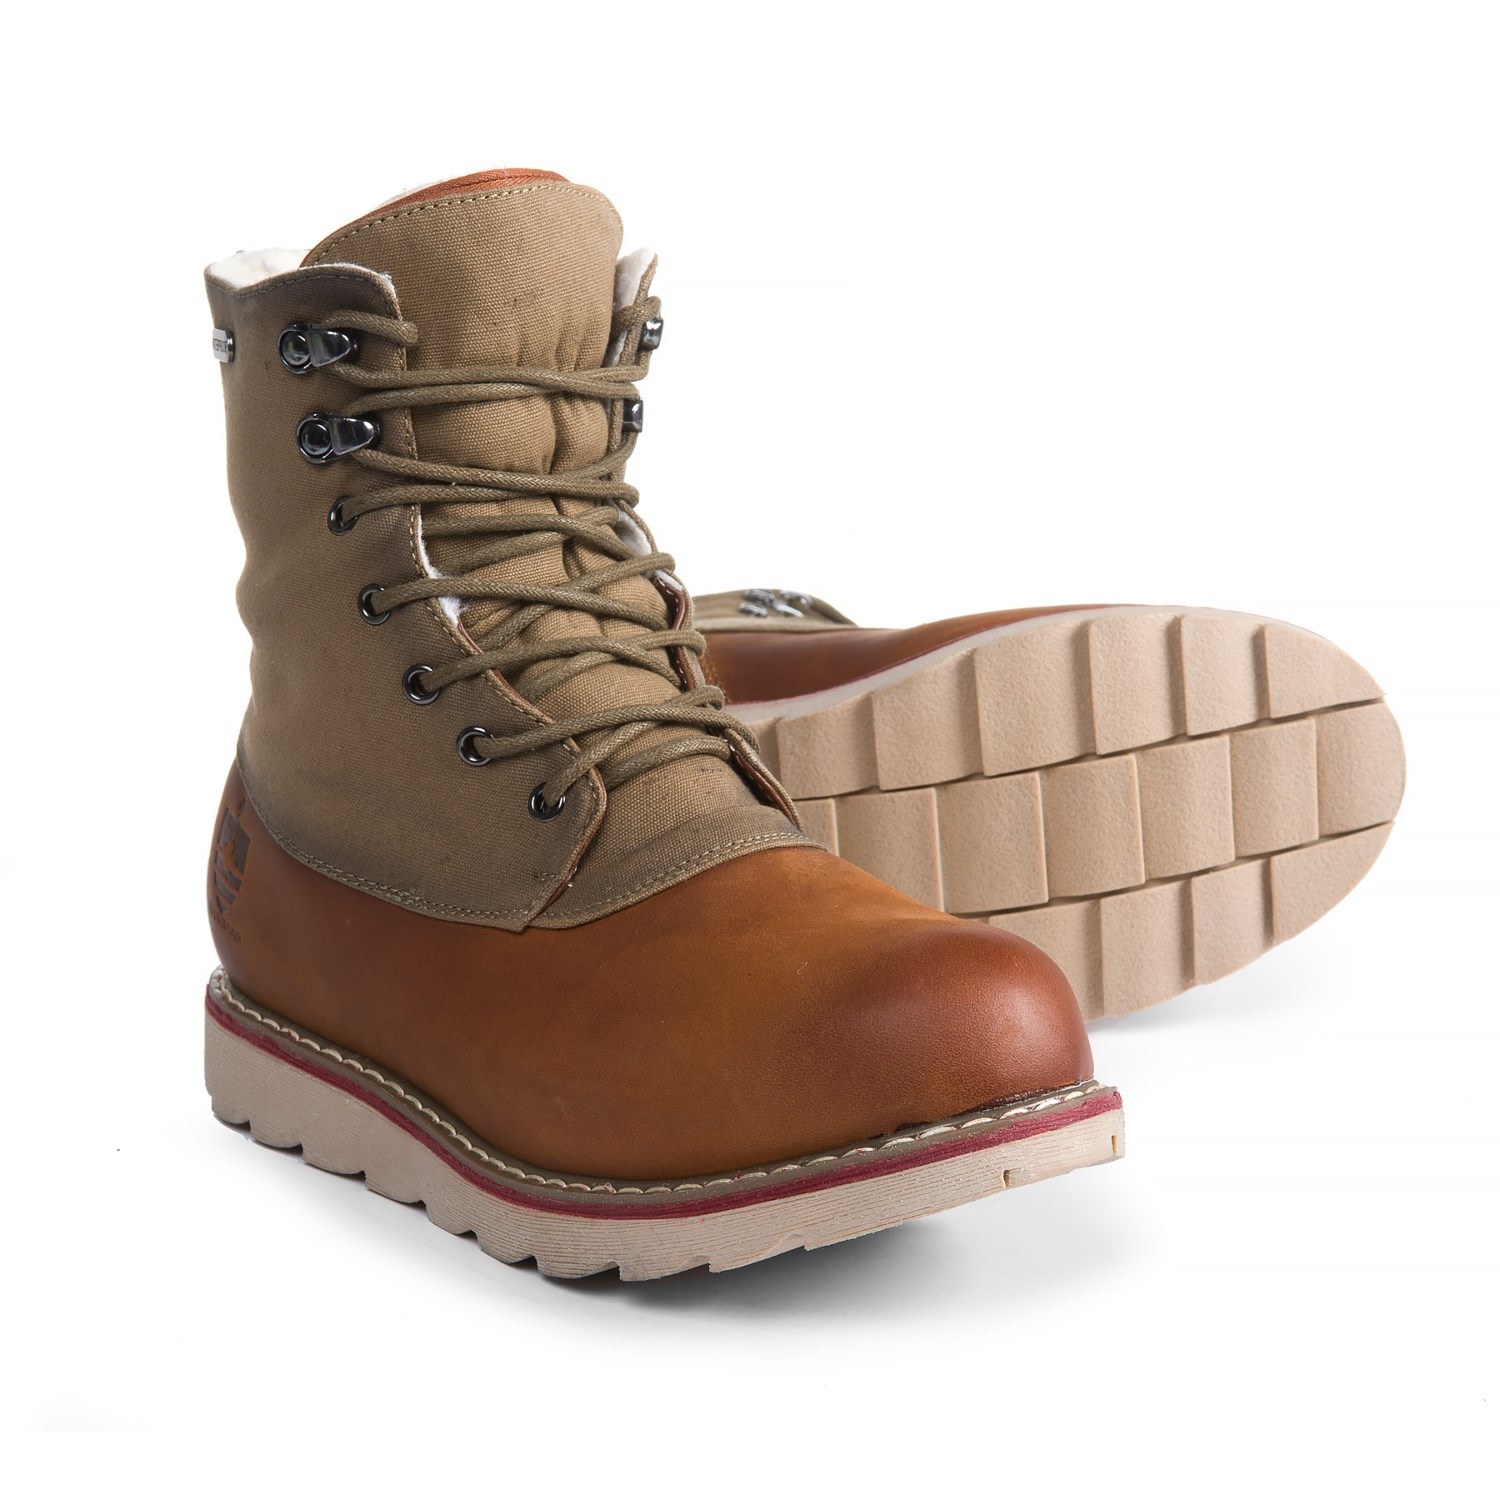 aa6c01656cf Royal Canadian Lasalle Pac Boots - Waterproof, Insulated (For Women)